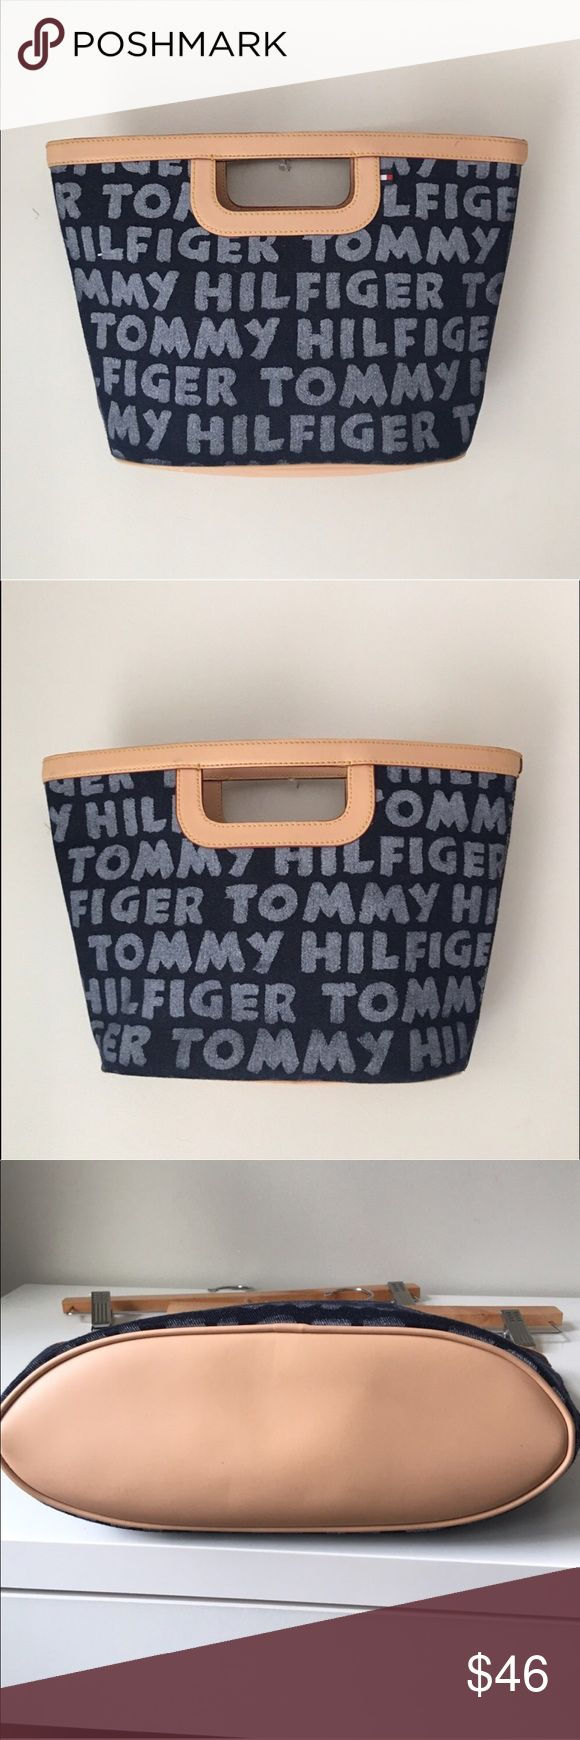 "Tommy Hilfiger Denim Clutch Handbag Gorgeous Denim Logo ""chalkboard style"" Tommy Hilfiger Clutch Handbag. 10 1/4"" Wide X 3 7/8"" Deep X 9 1/4"" Long. One scuff mark in upper right - see pic #2). Excellent preowned condition. Tommy Hilfiger Bags"